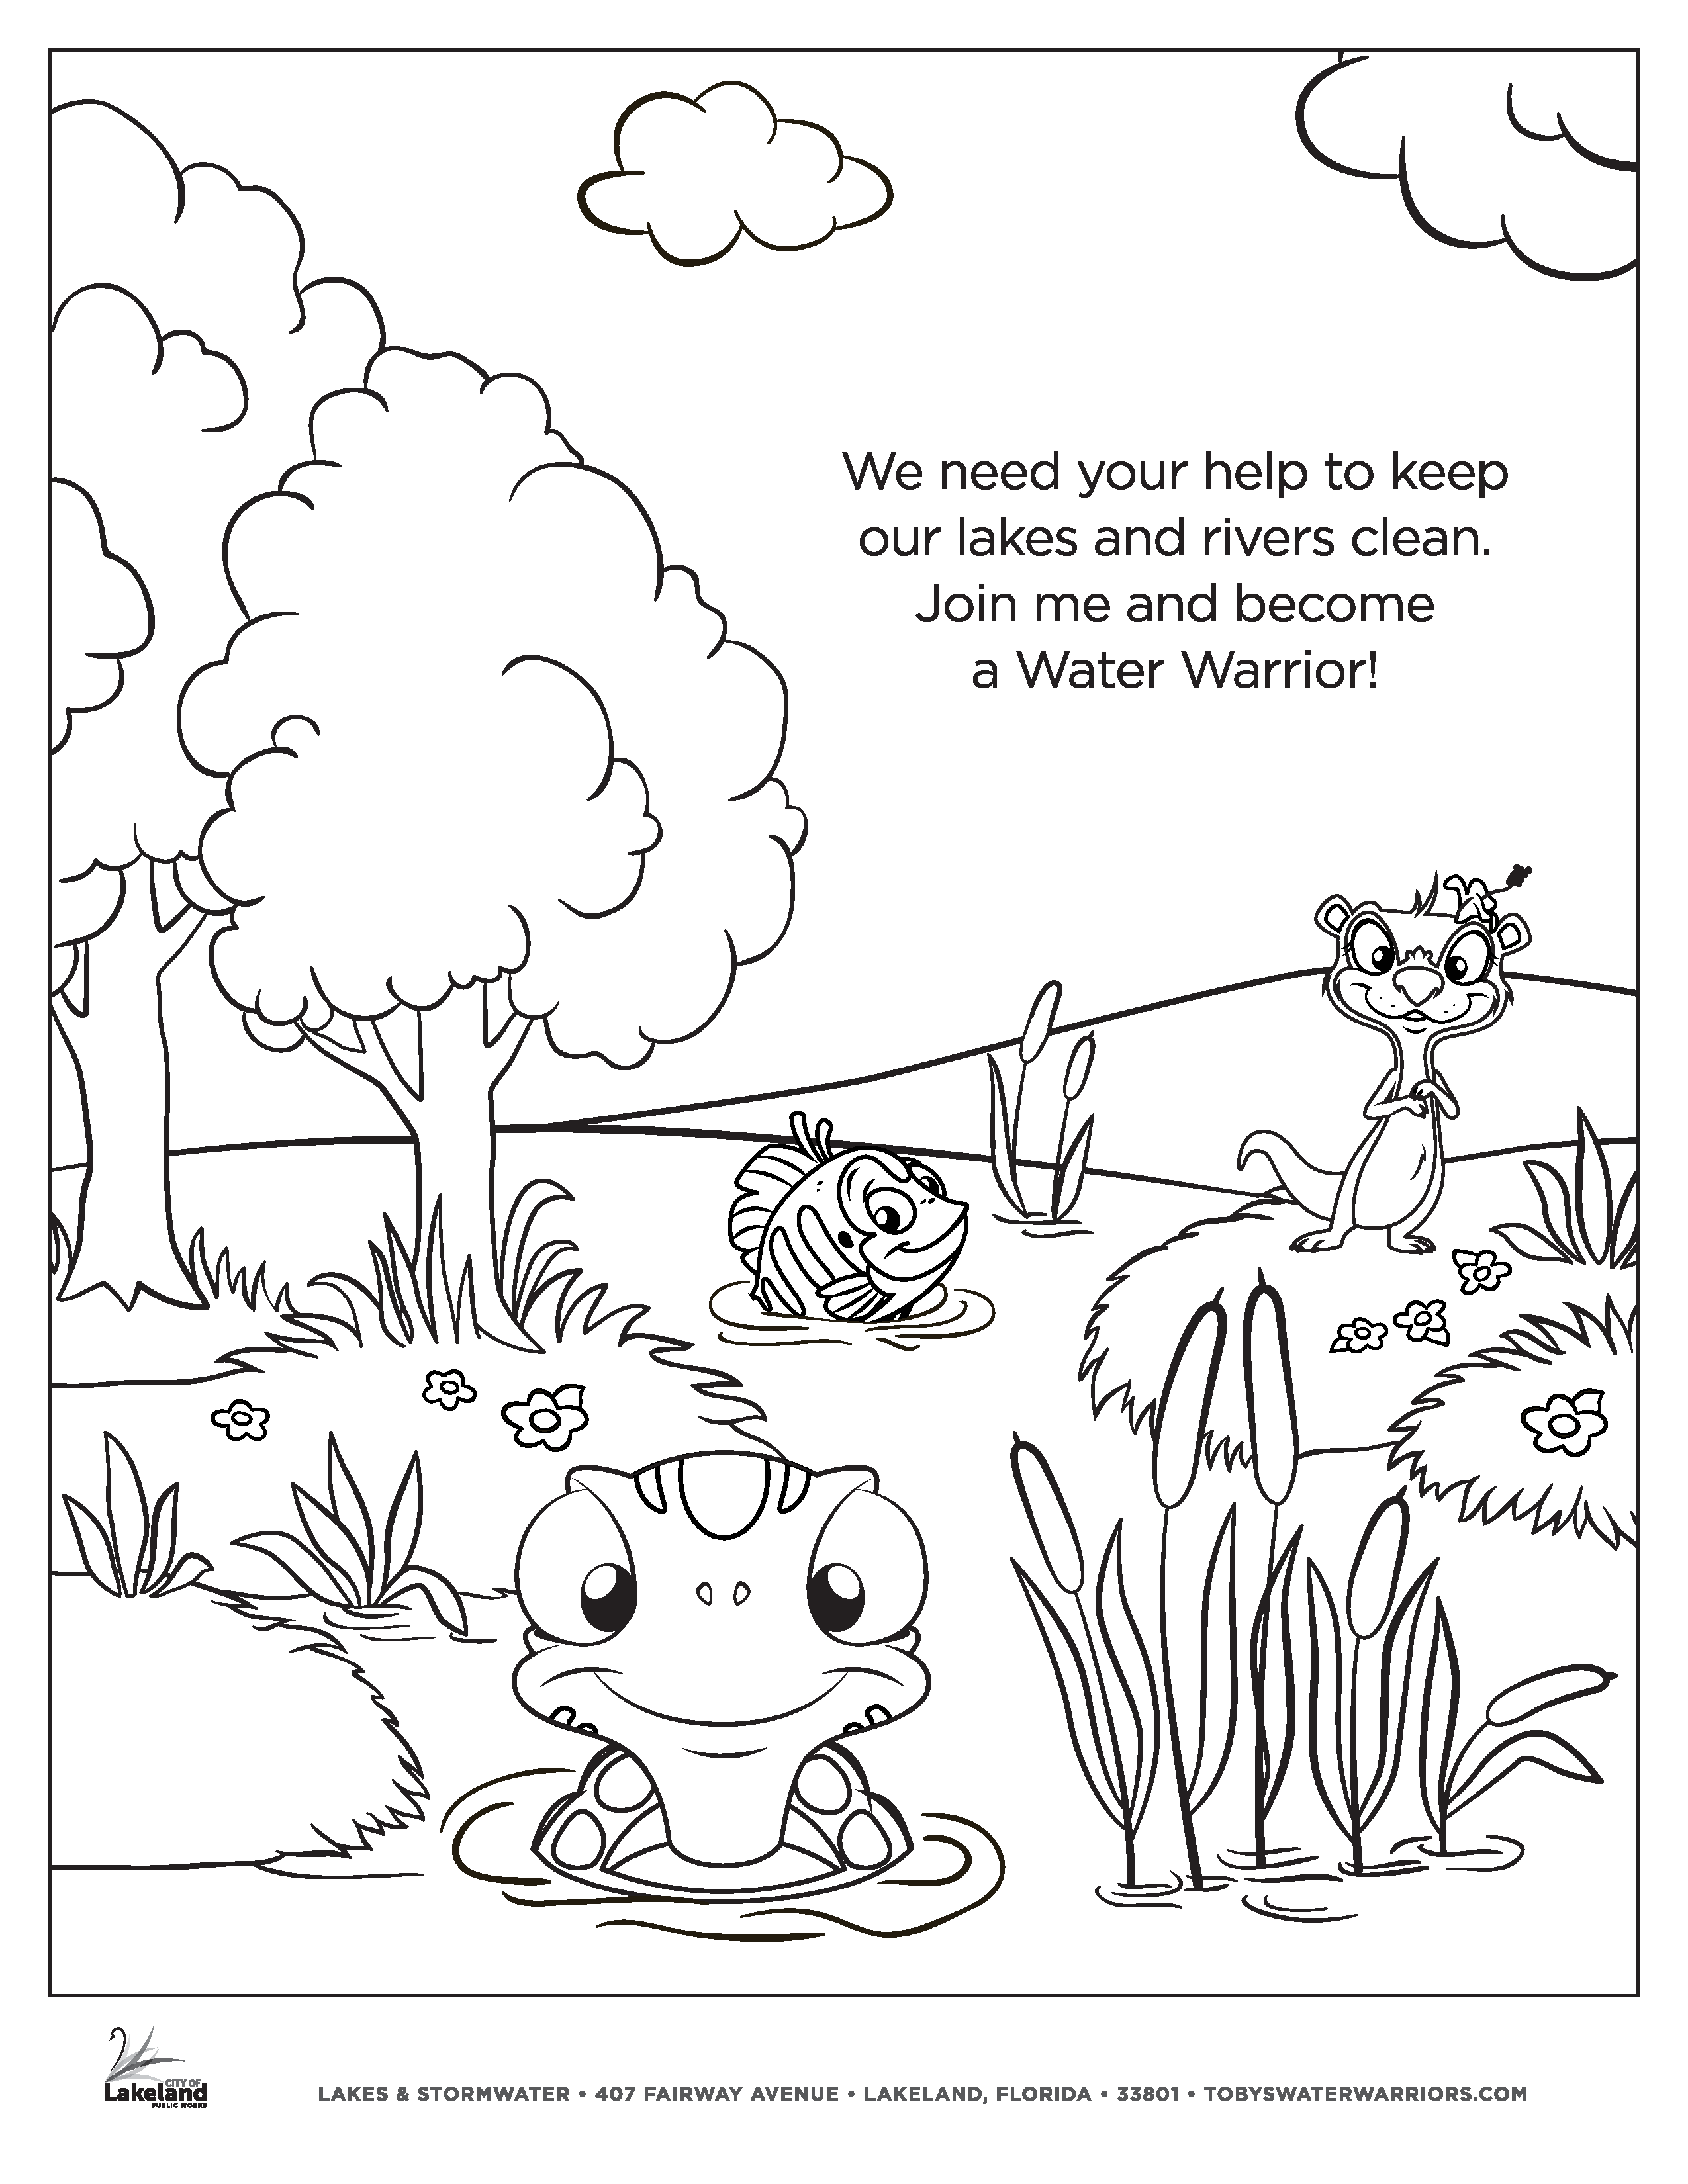 Toby's Water Warriors Coloring Page 5